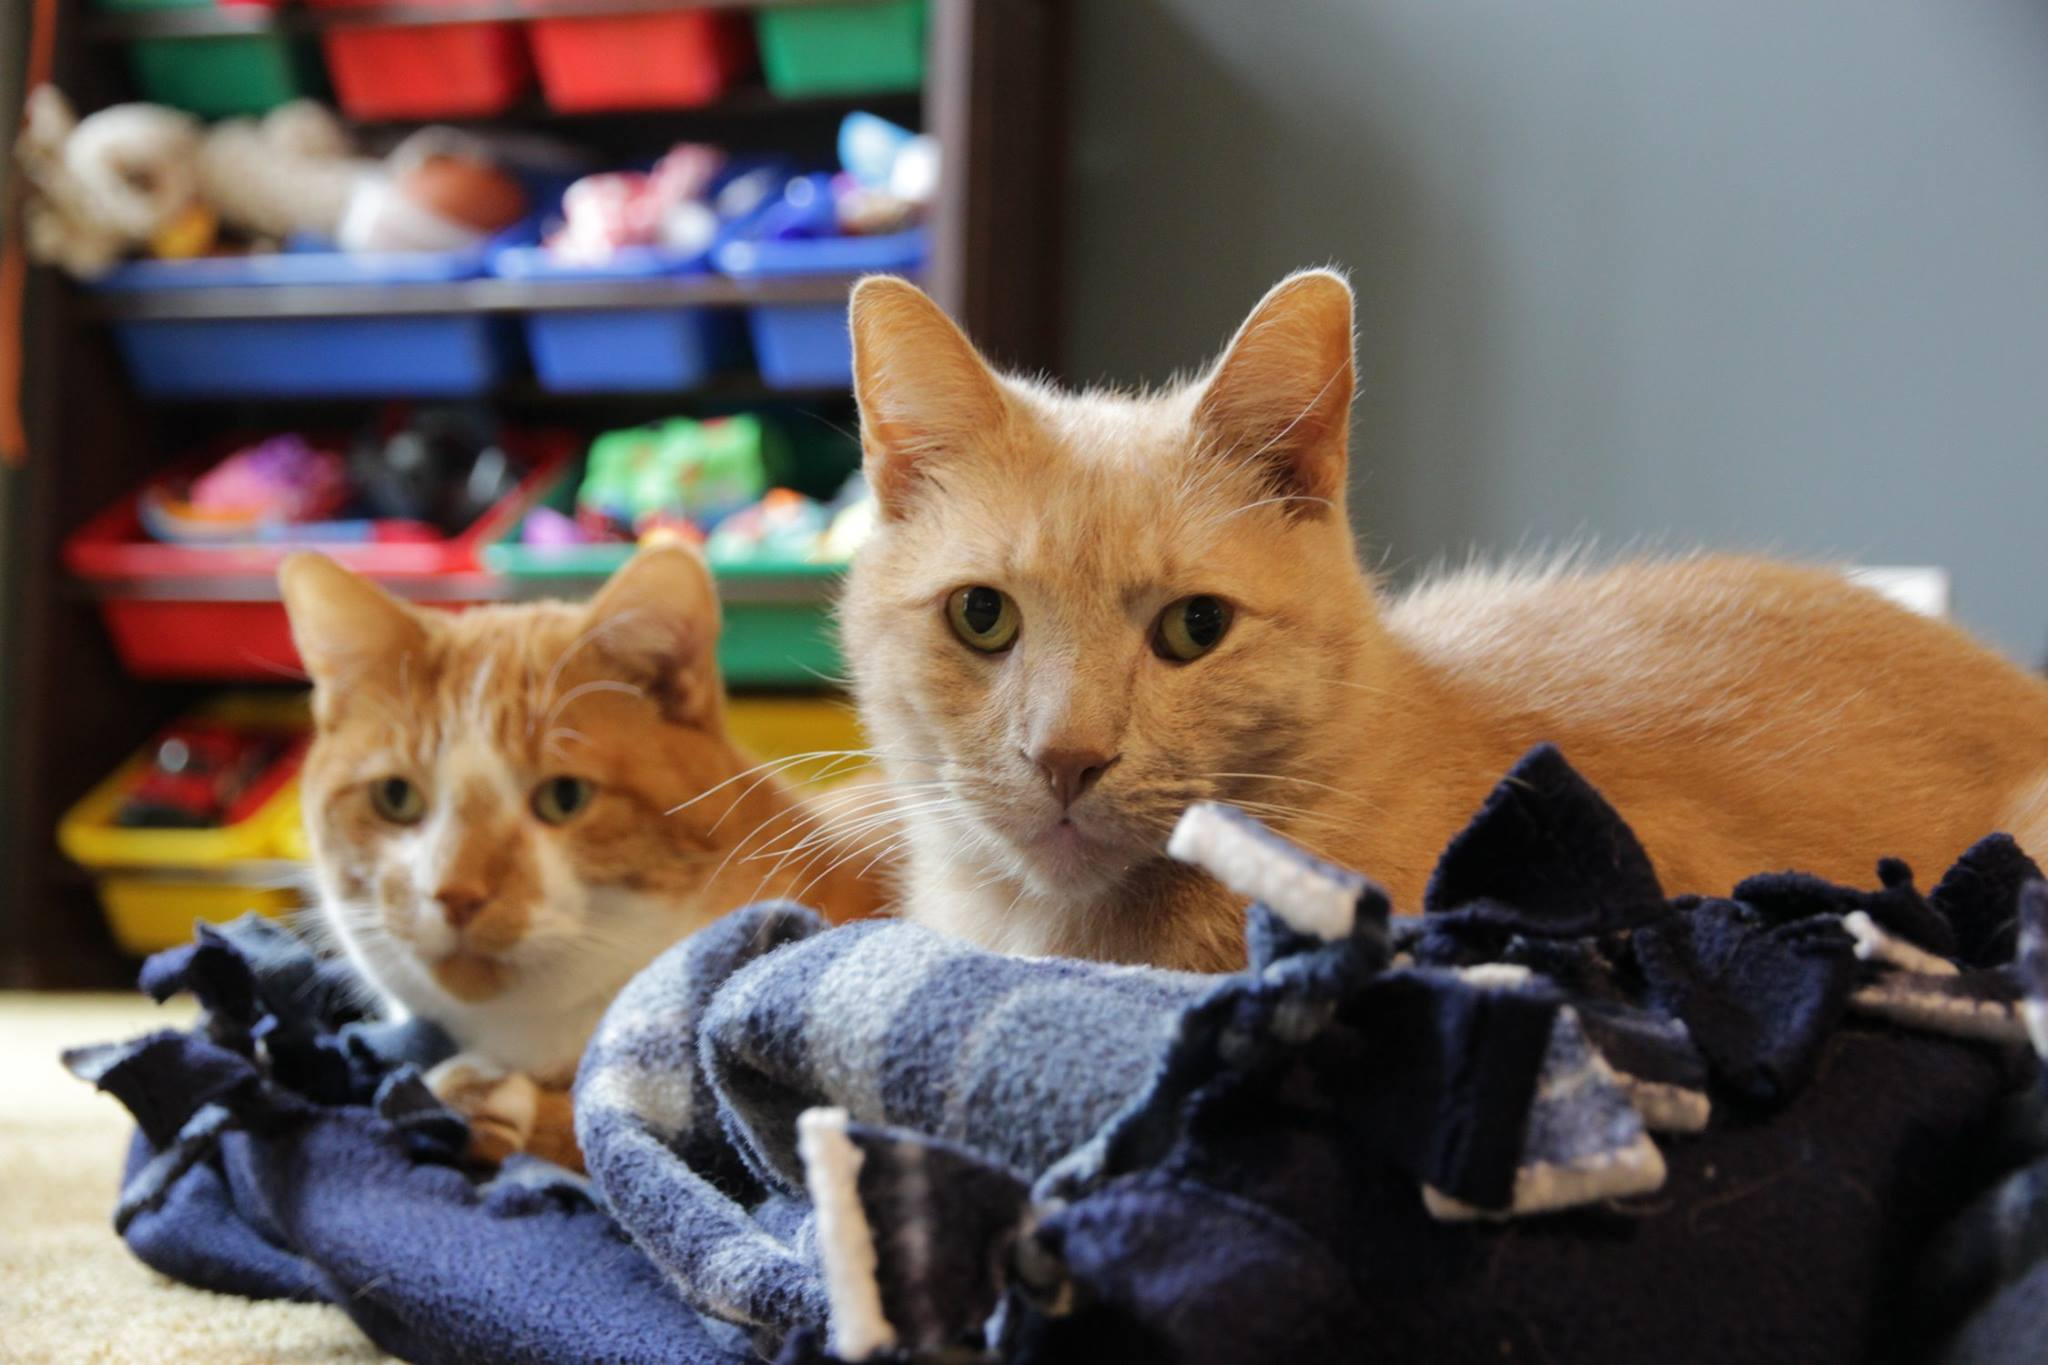 My two cats on a blanket, Leo foreground, Buck background